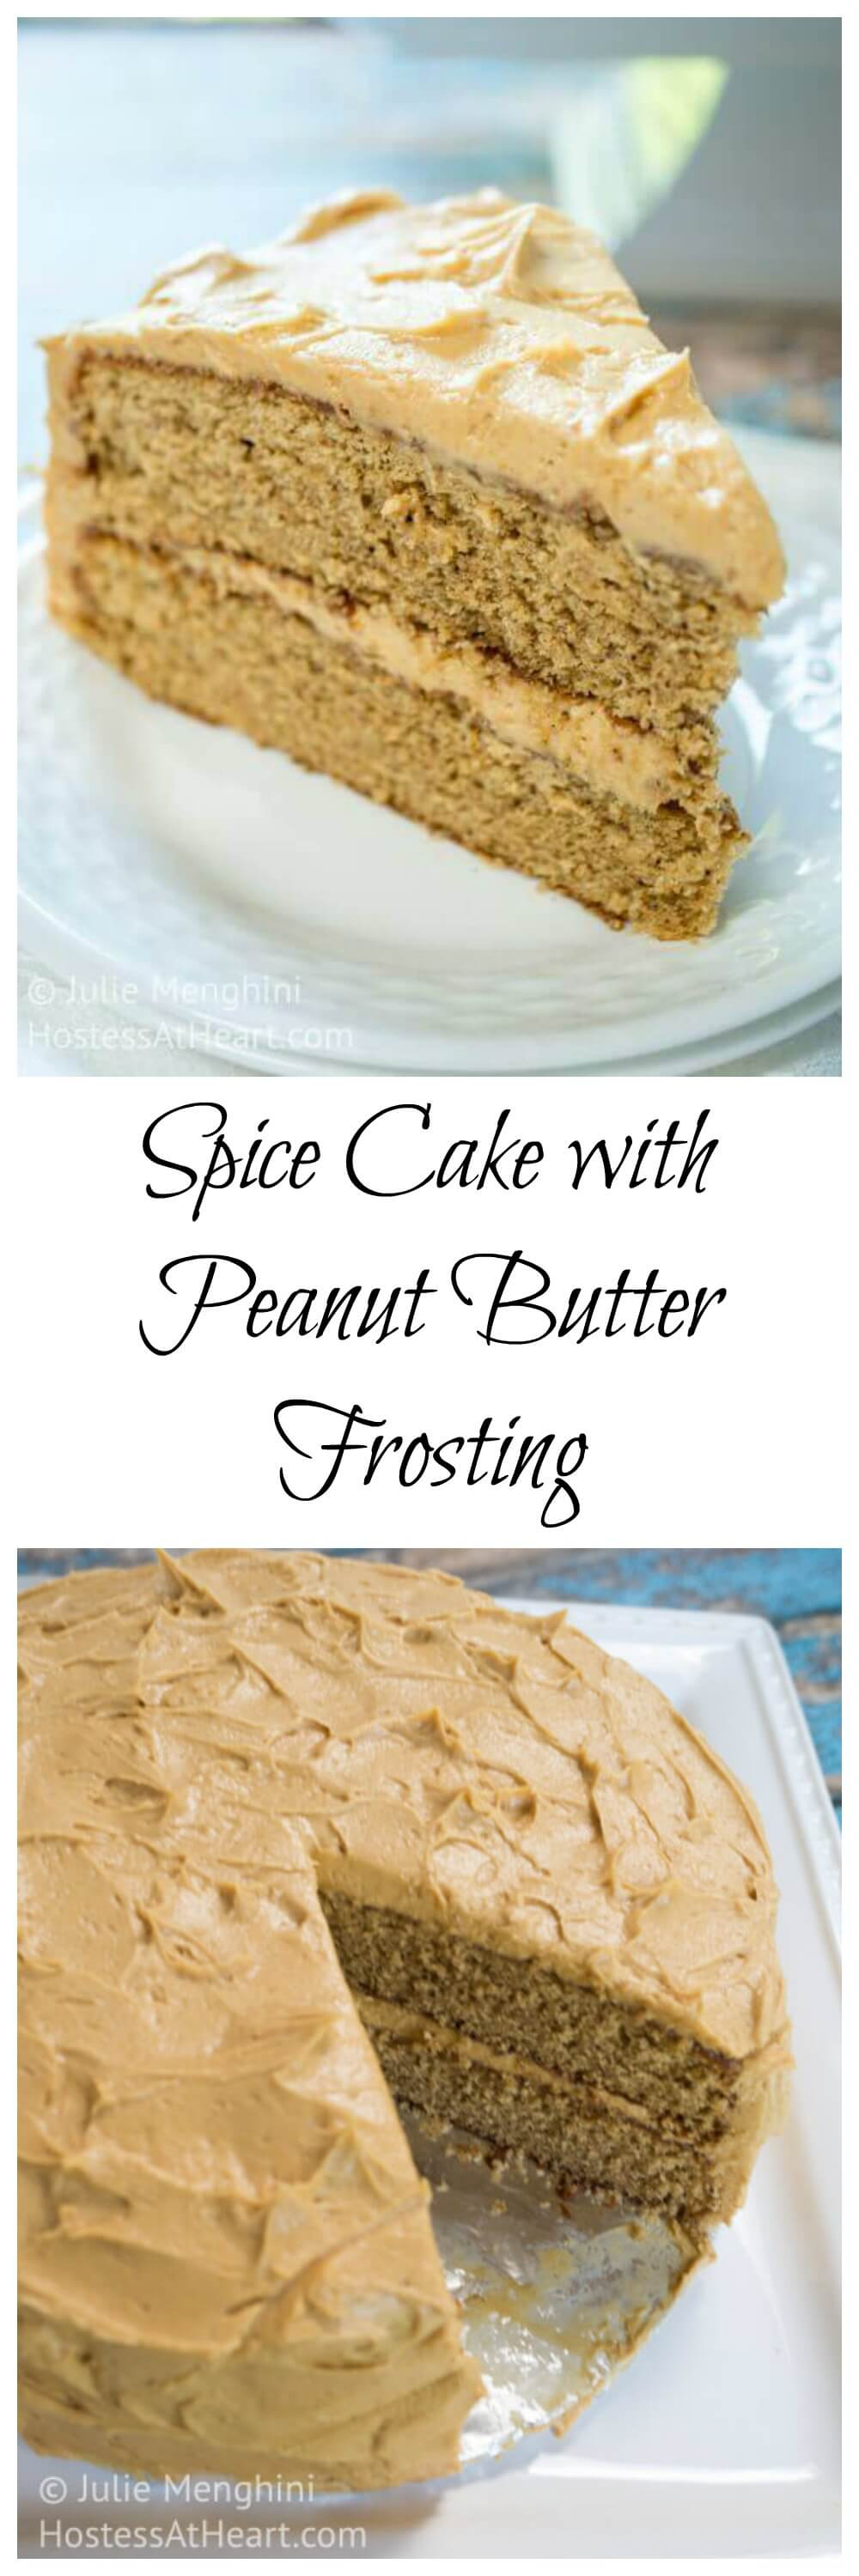 Spice Cake with Peanut Butter Frosting is soft and tender.  This peanut butter frosting is luscious and creamy.  This easy cake is absolutely my favorite! #Cake #dessert #peanutbuttercake #peanutbutter #spicecakerecipes #spicecake